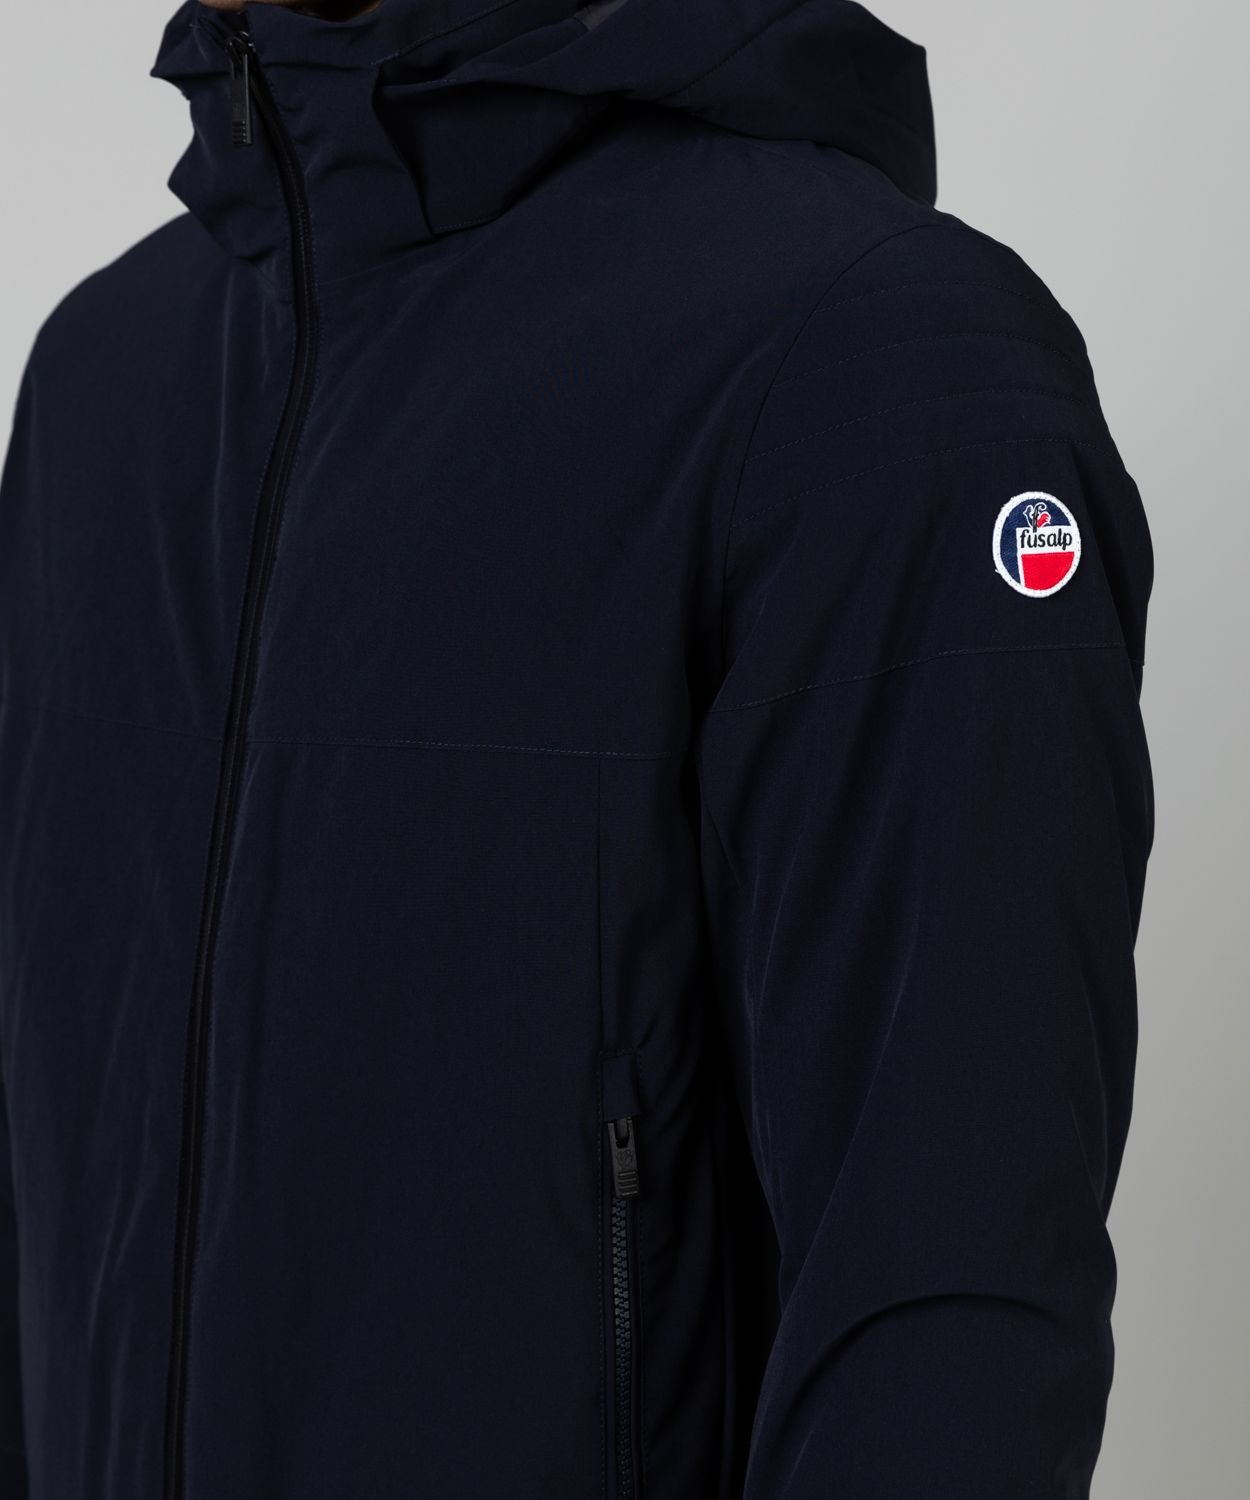 Men's Gavarnie Ski Jacket